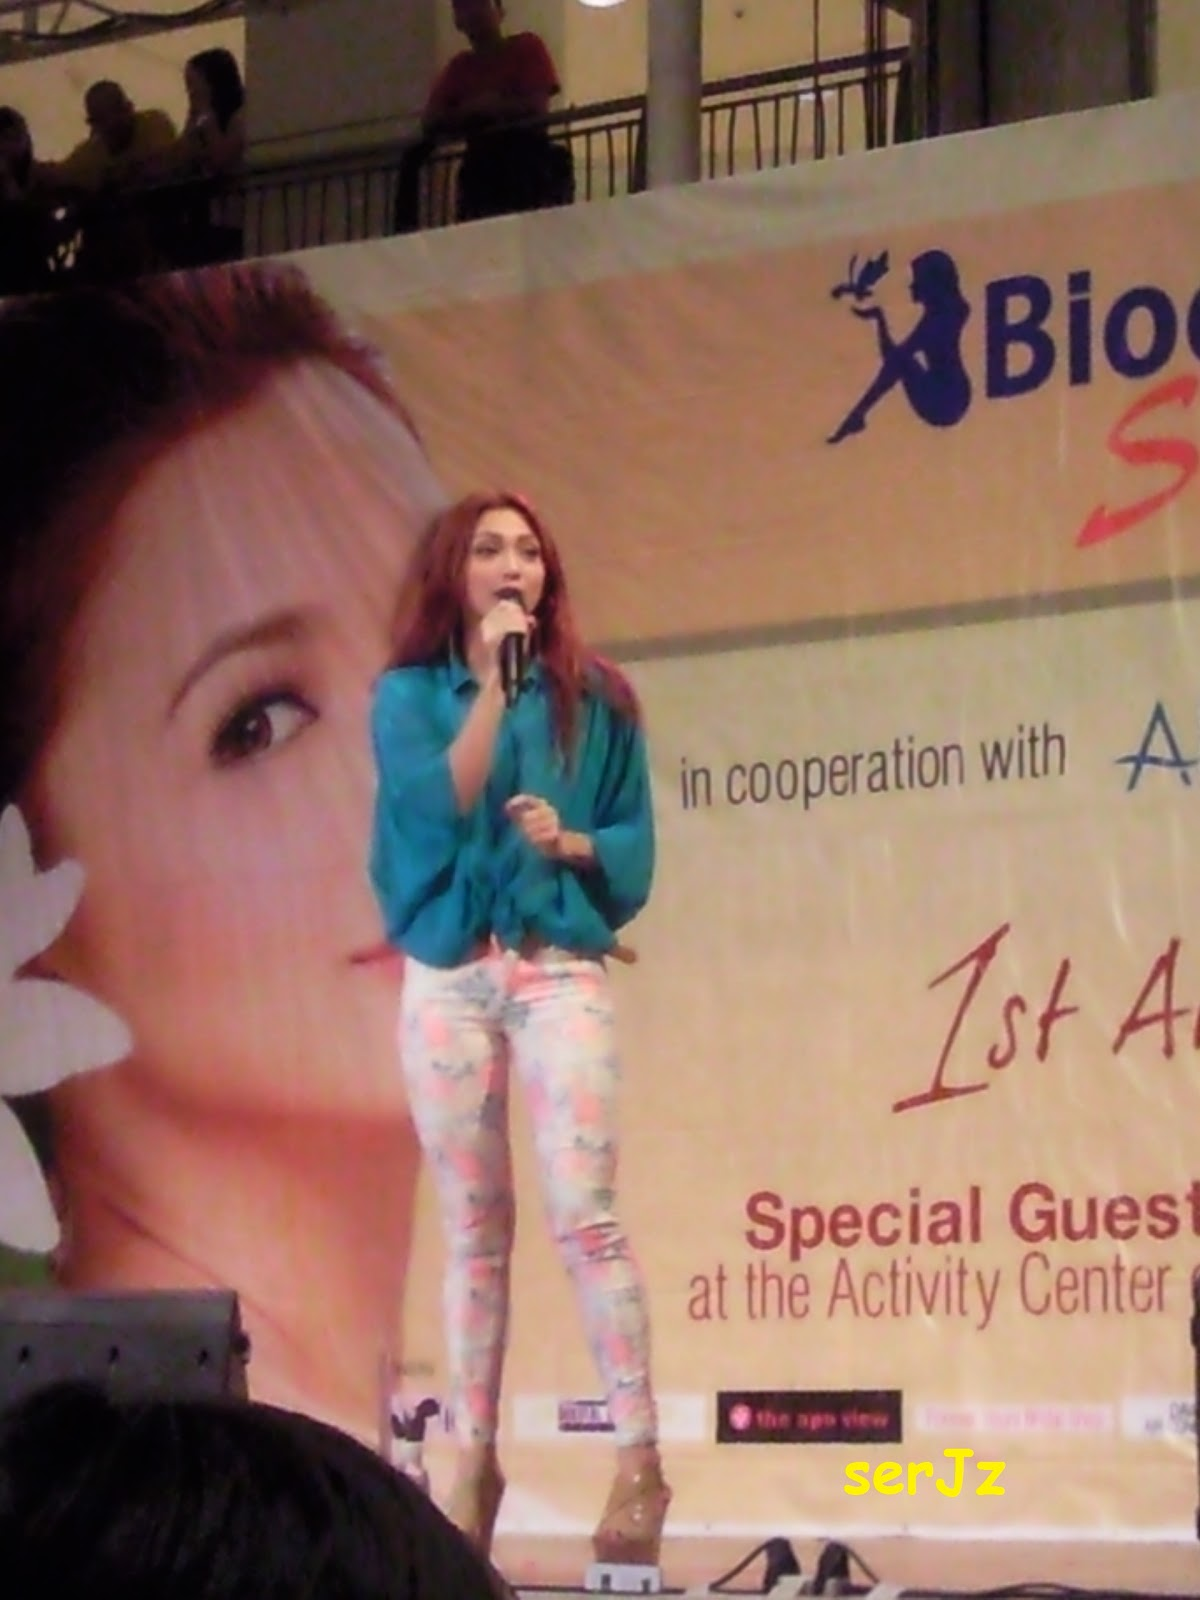 Iya Villania Images Great up close and personal: iya villania for bioessence - the s pile